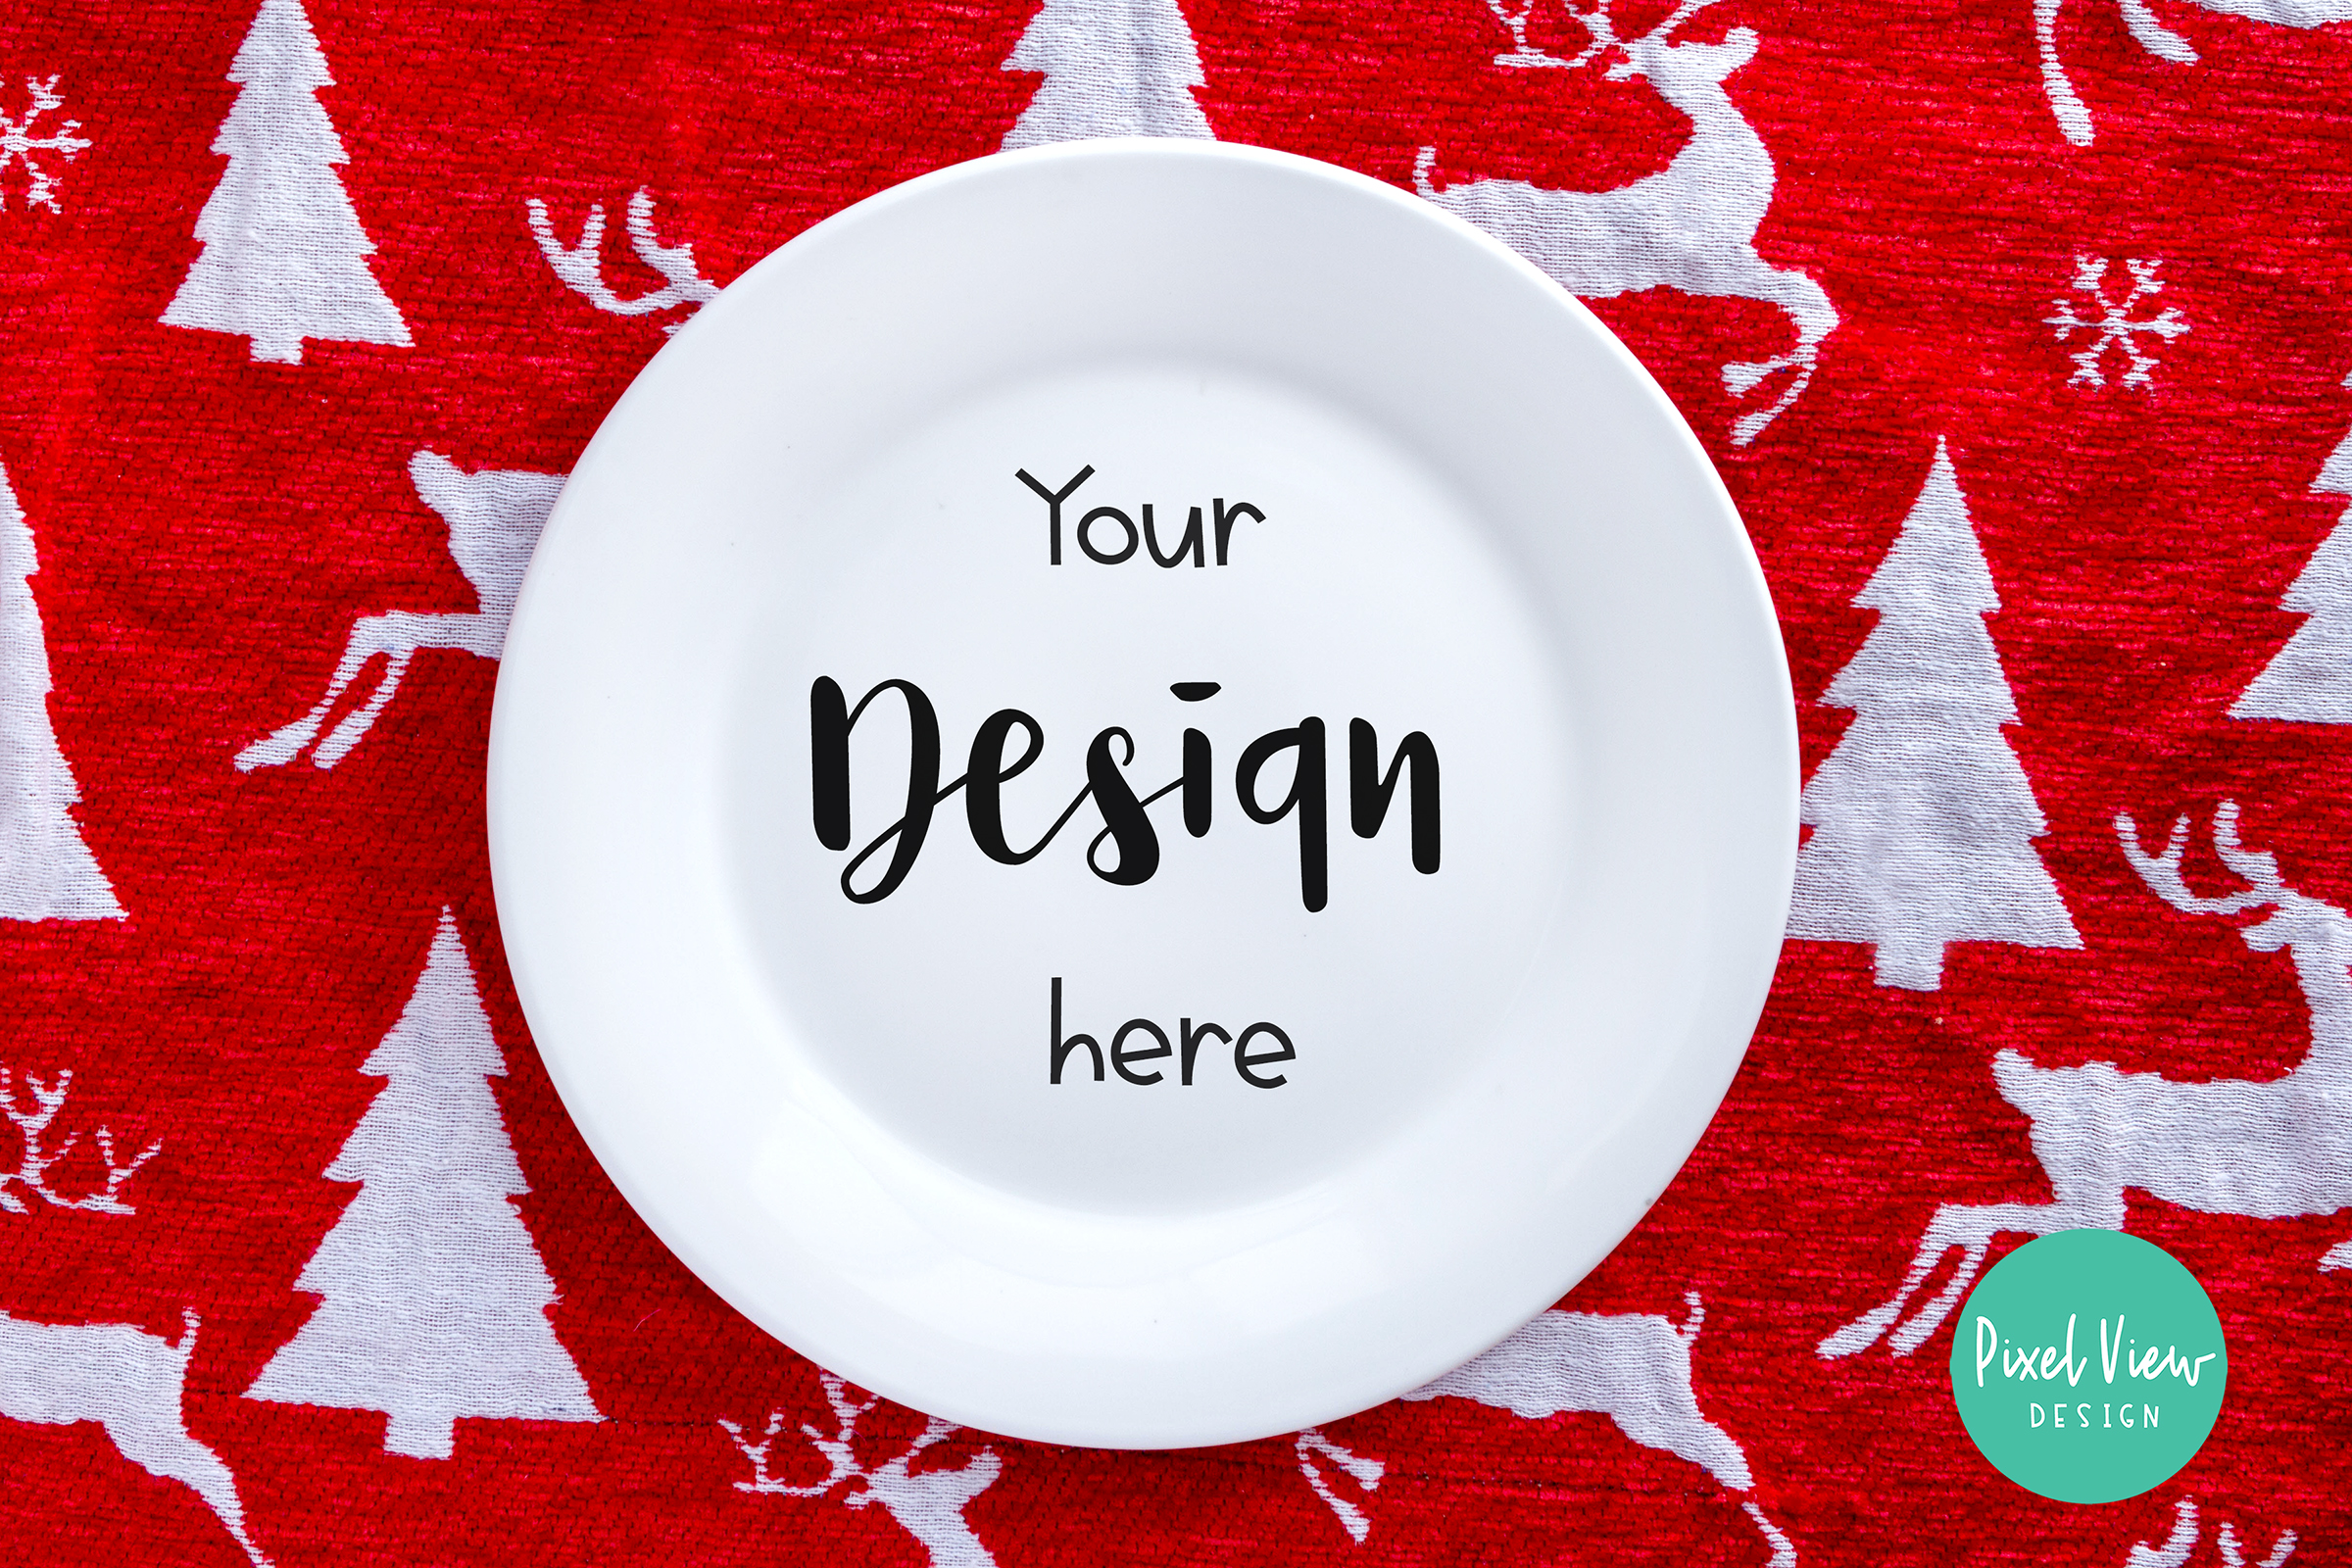 Download Free White Plate Mock Up Christmas Graphic By Pixel View Design for Cricut Explore, Silhouette and other cutting machines.